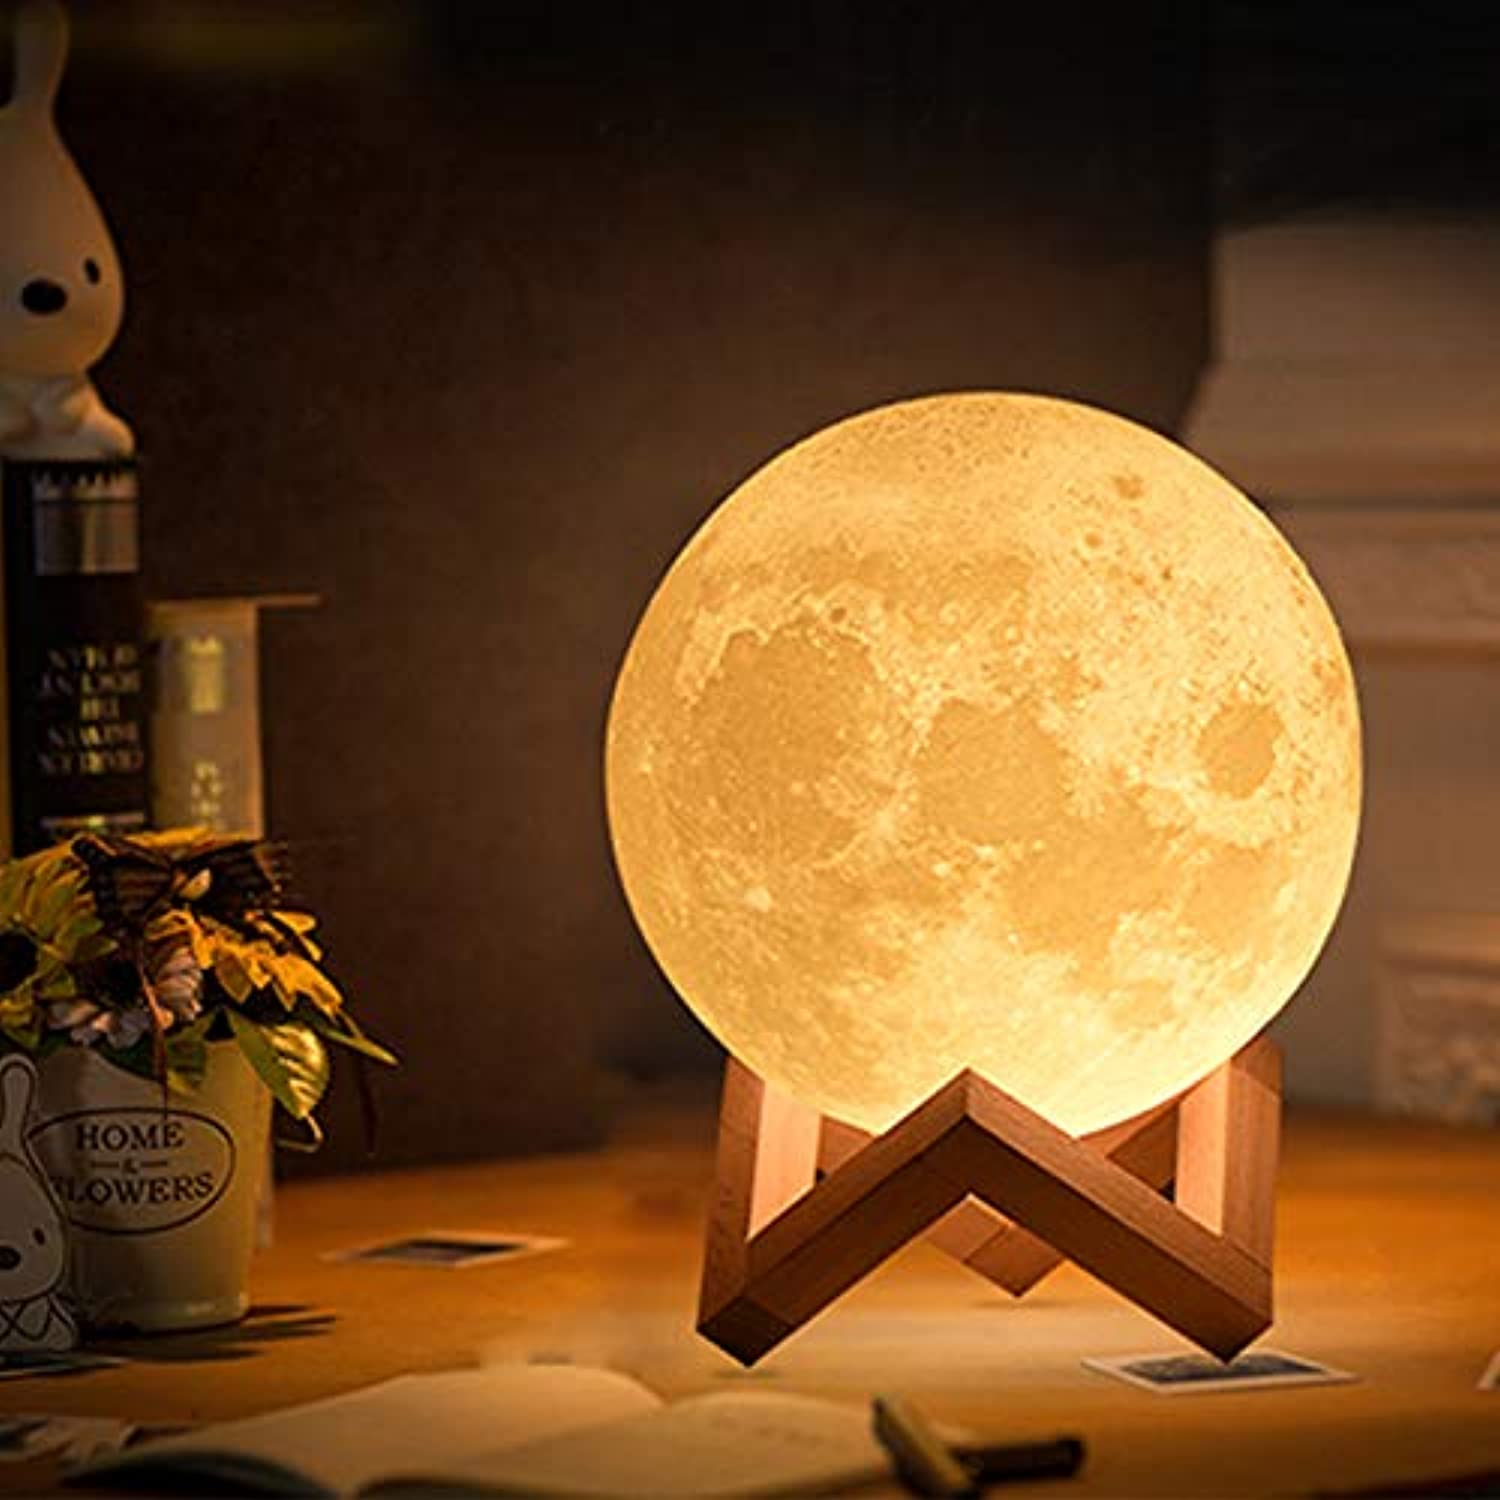 KAIYED 3D Print Moon Lamp 20Cm 18Cm 15Cm colorful Change Touch USB Led Night Light Home Decor Creative Gift